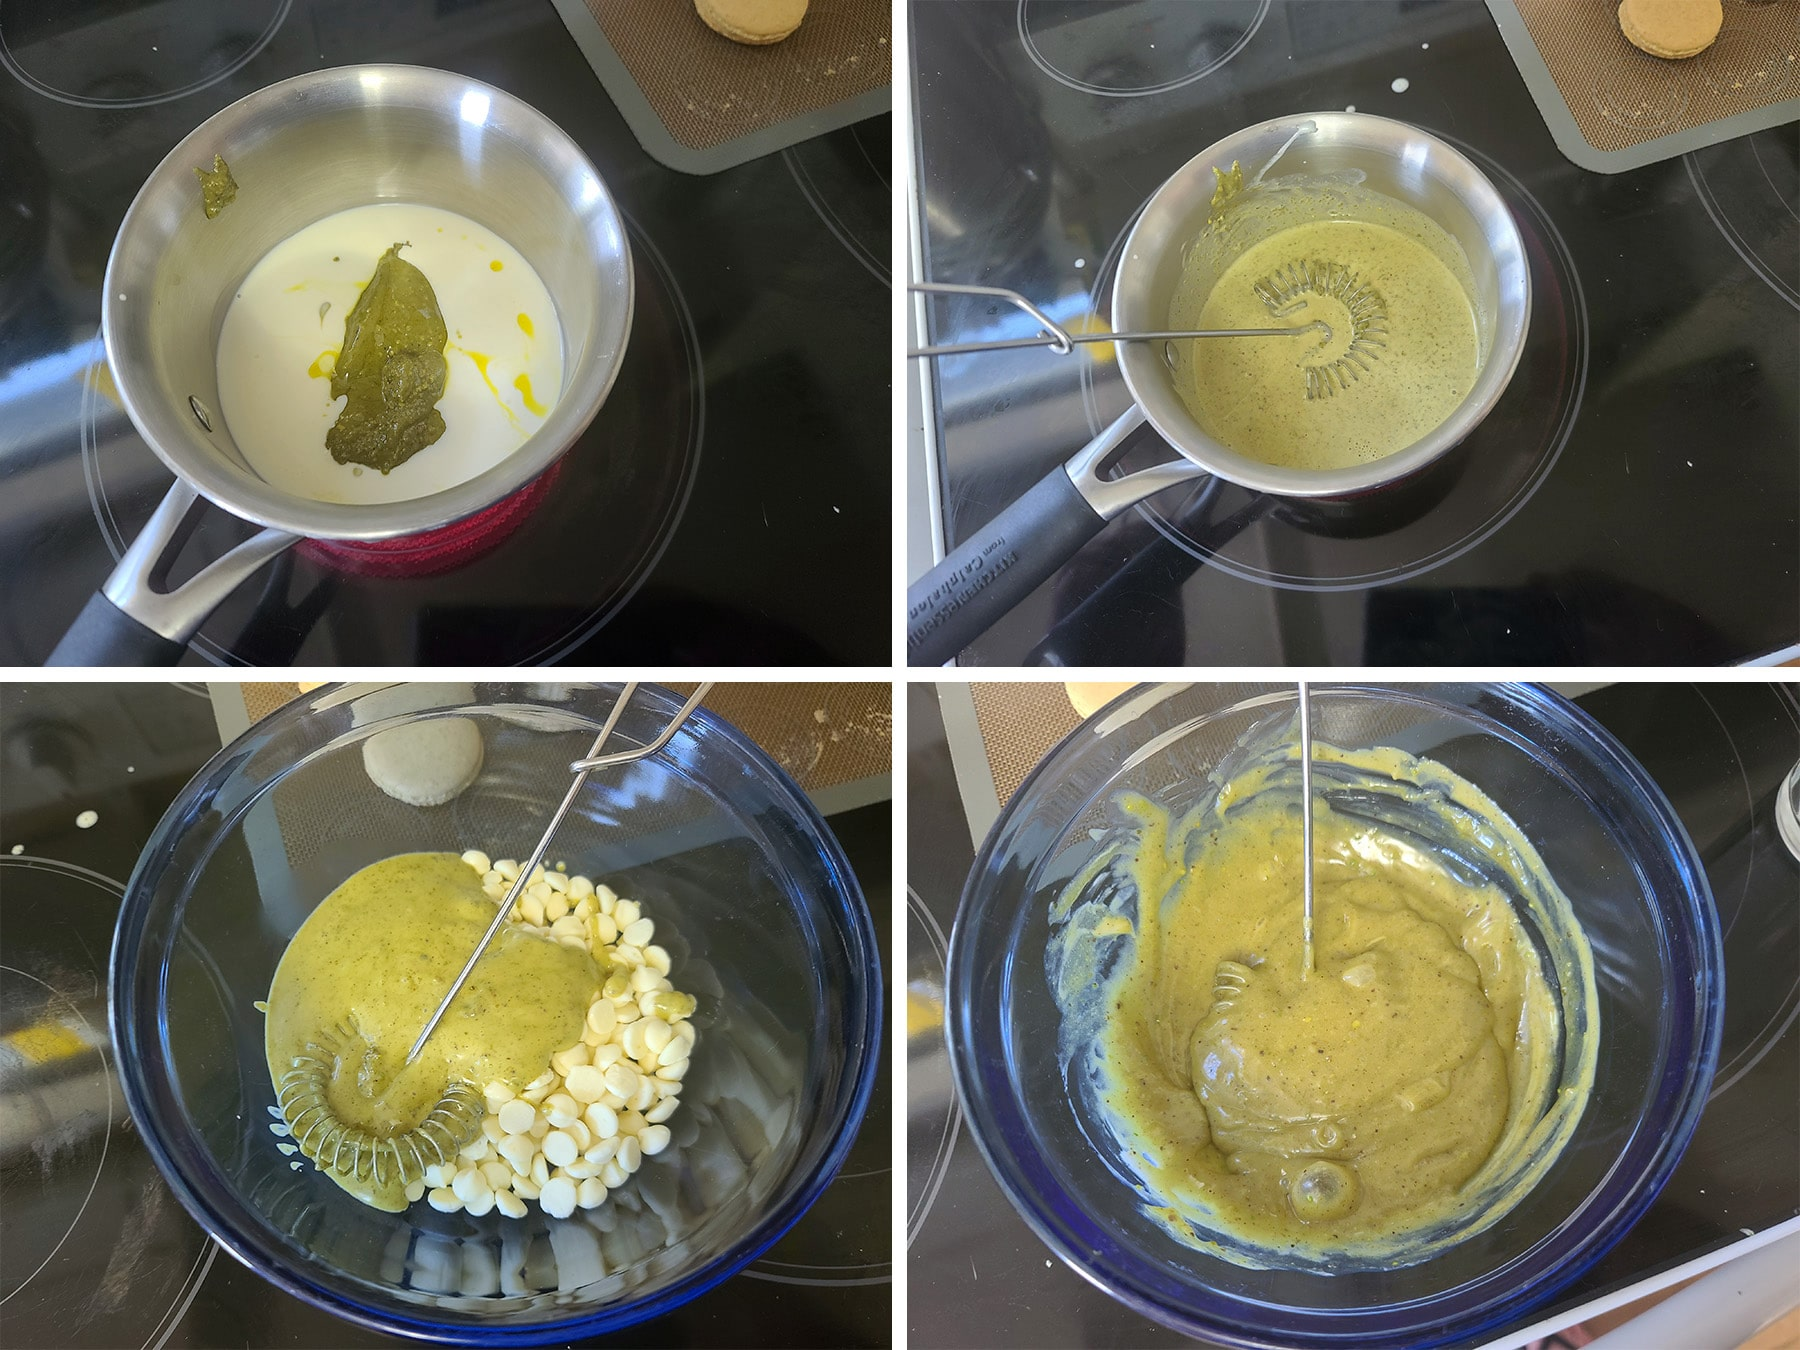 Cream and pistachio butter being cooked together and stirred into white chocolate chips to make the ganache filling.